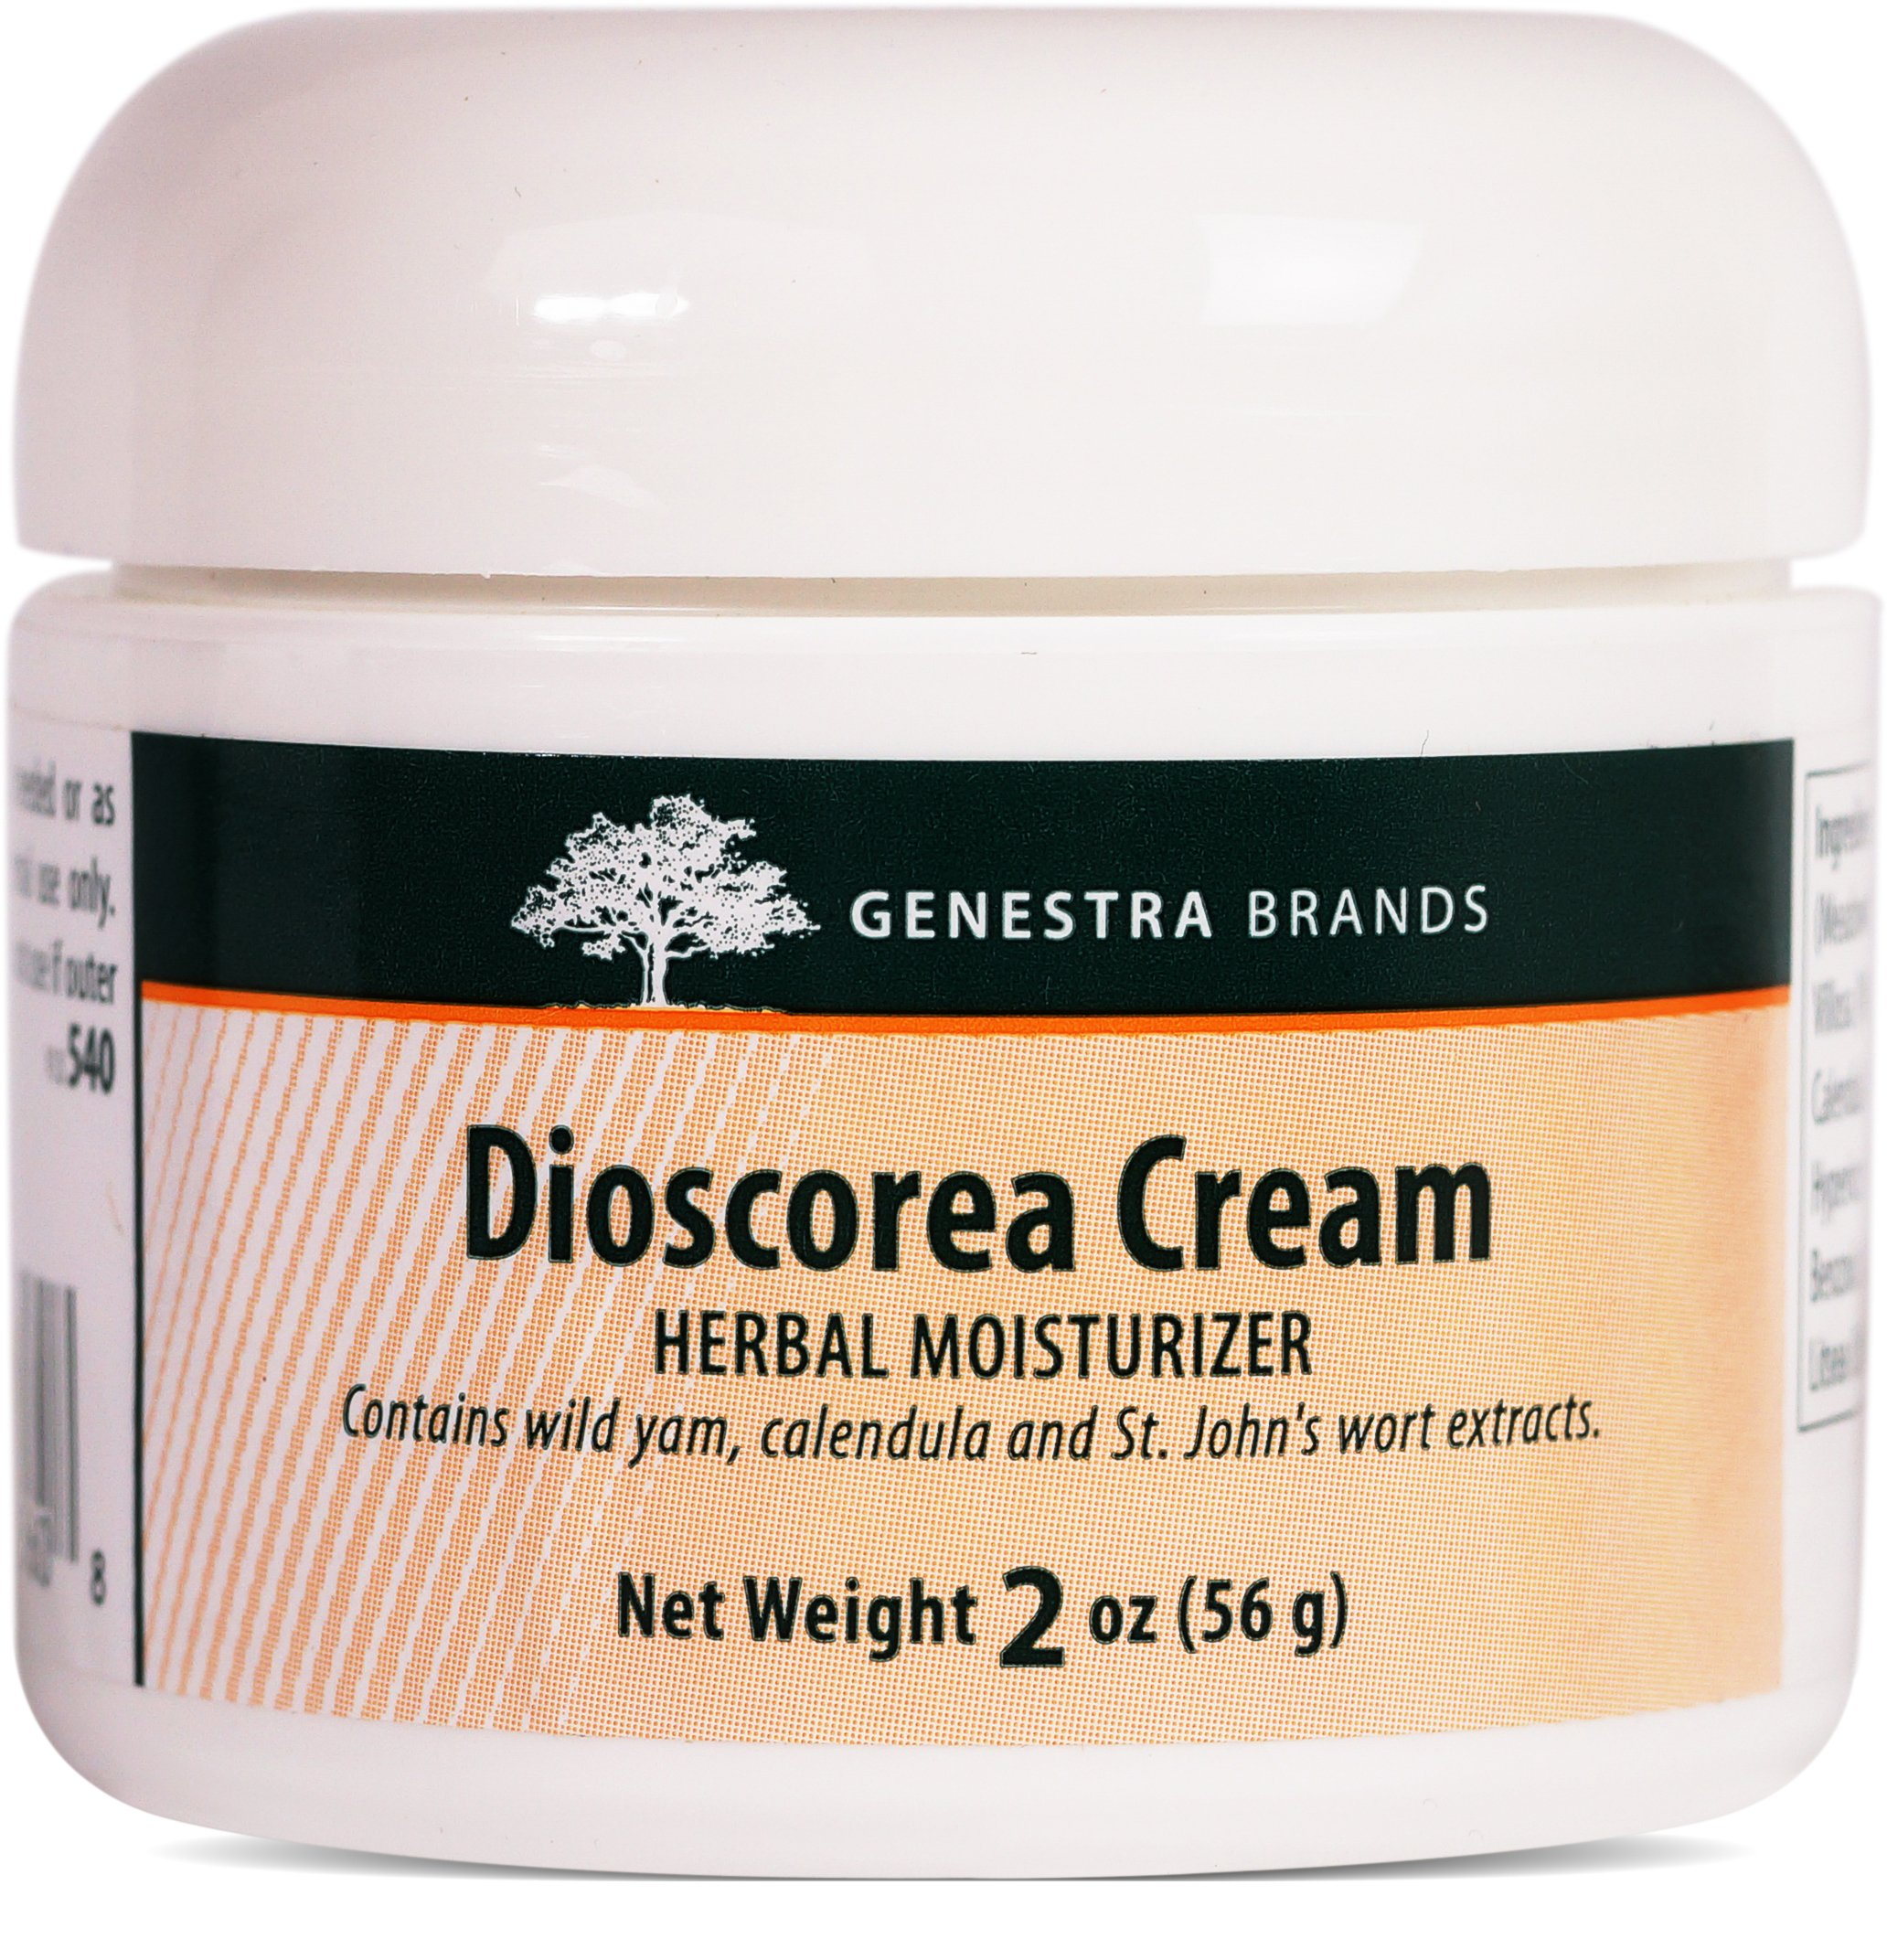 Genestra Brands - Dioscorea Cream - Herbal Moisturizer with Wild Yam, Calendula and St. John's Wort Extracts - 2 oz (56 g)